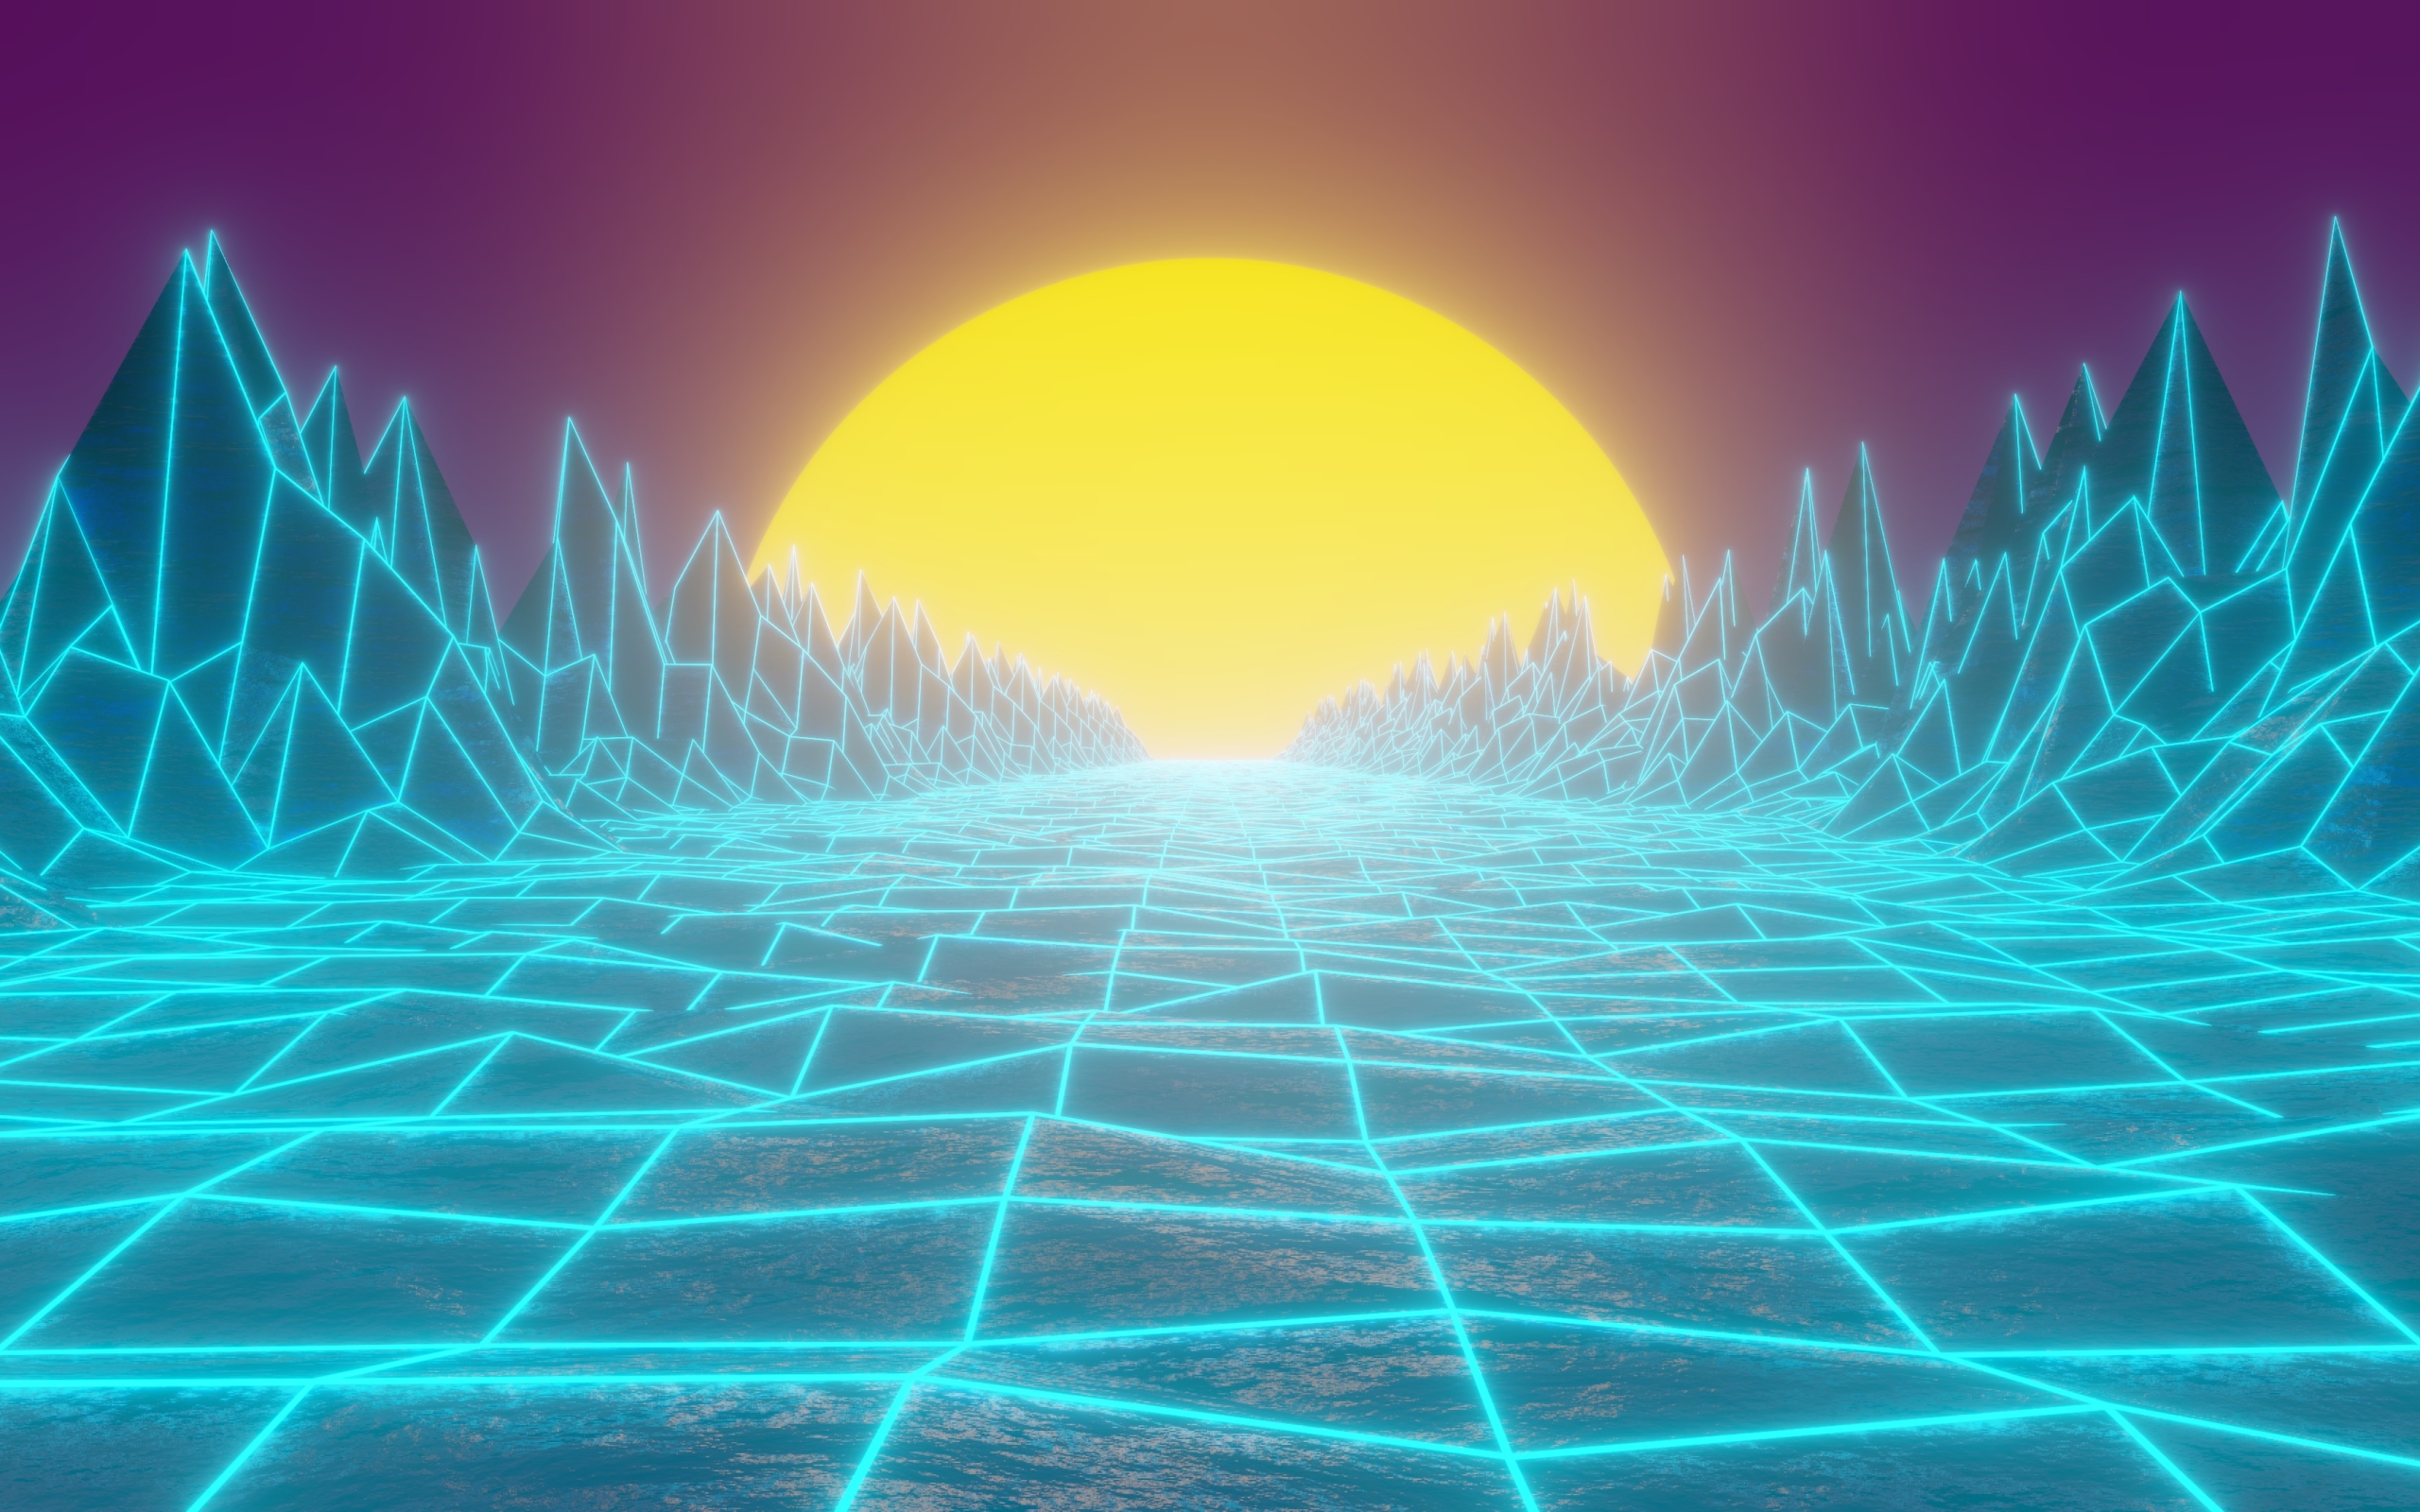 Wallpaper of Grid, Mountain, Retrowave, Road, Synthwave background